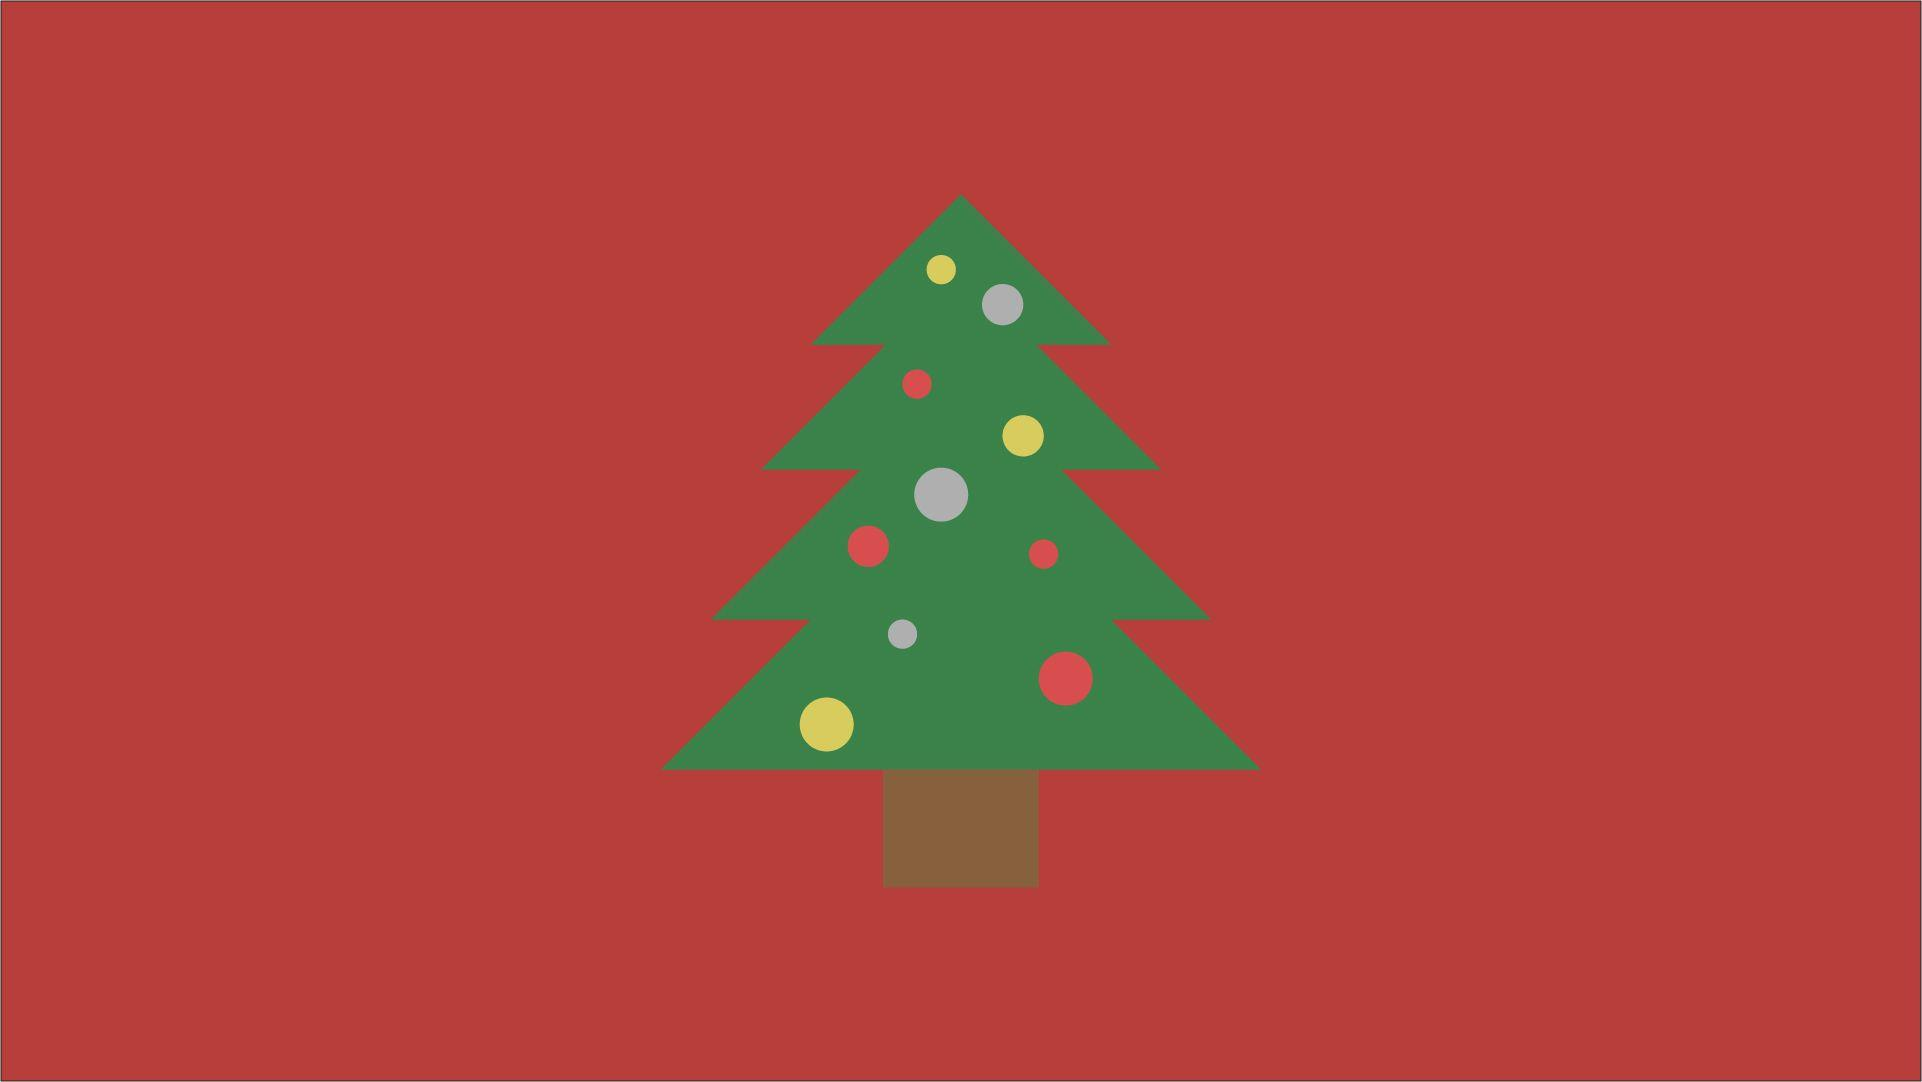 Minimalist Christmas Tree Wallpaper I whipped up quick : wallpapers